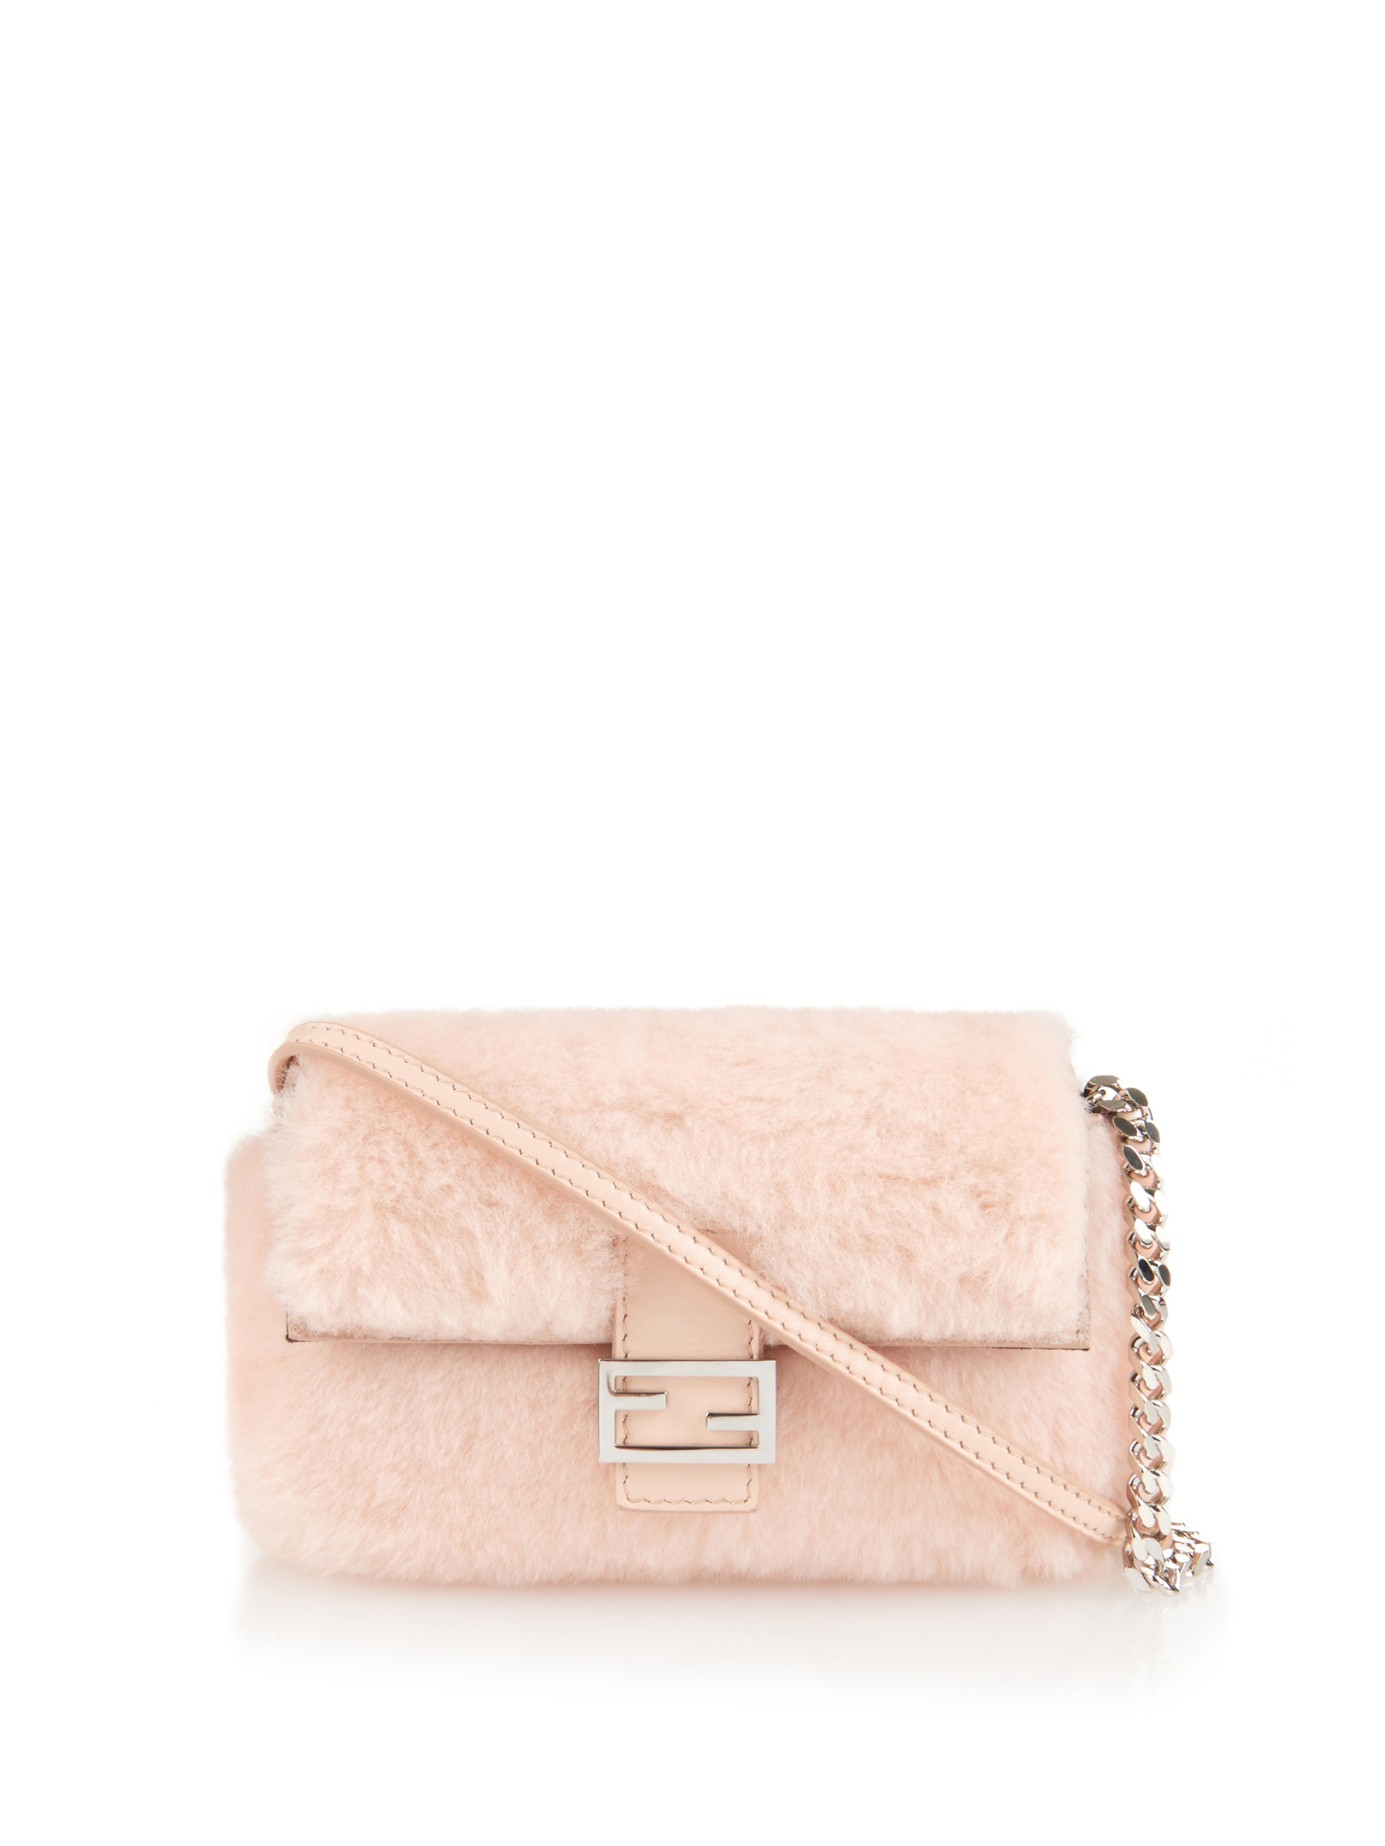 Fendi Baguette Micro Leather-trimmed Shearling Shoulder Bag in Pink ... e8fd9ed076d3e